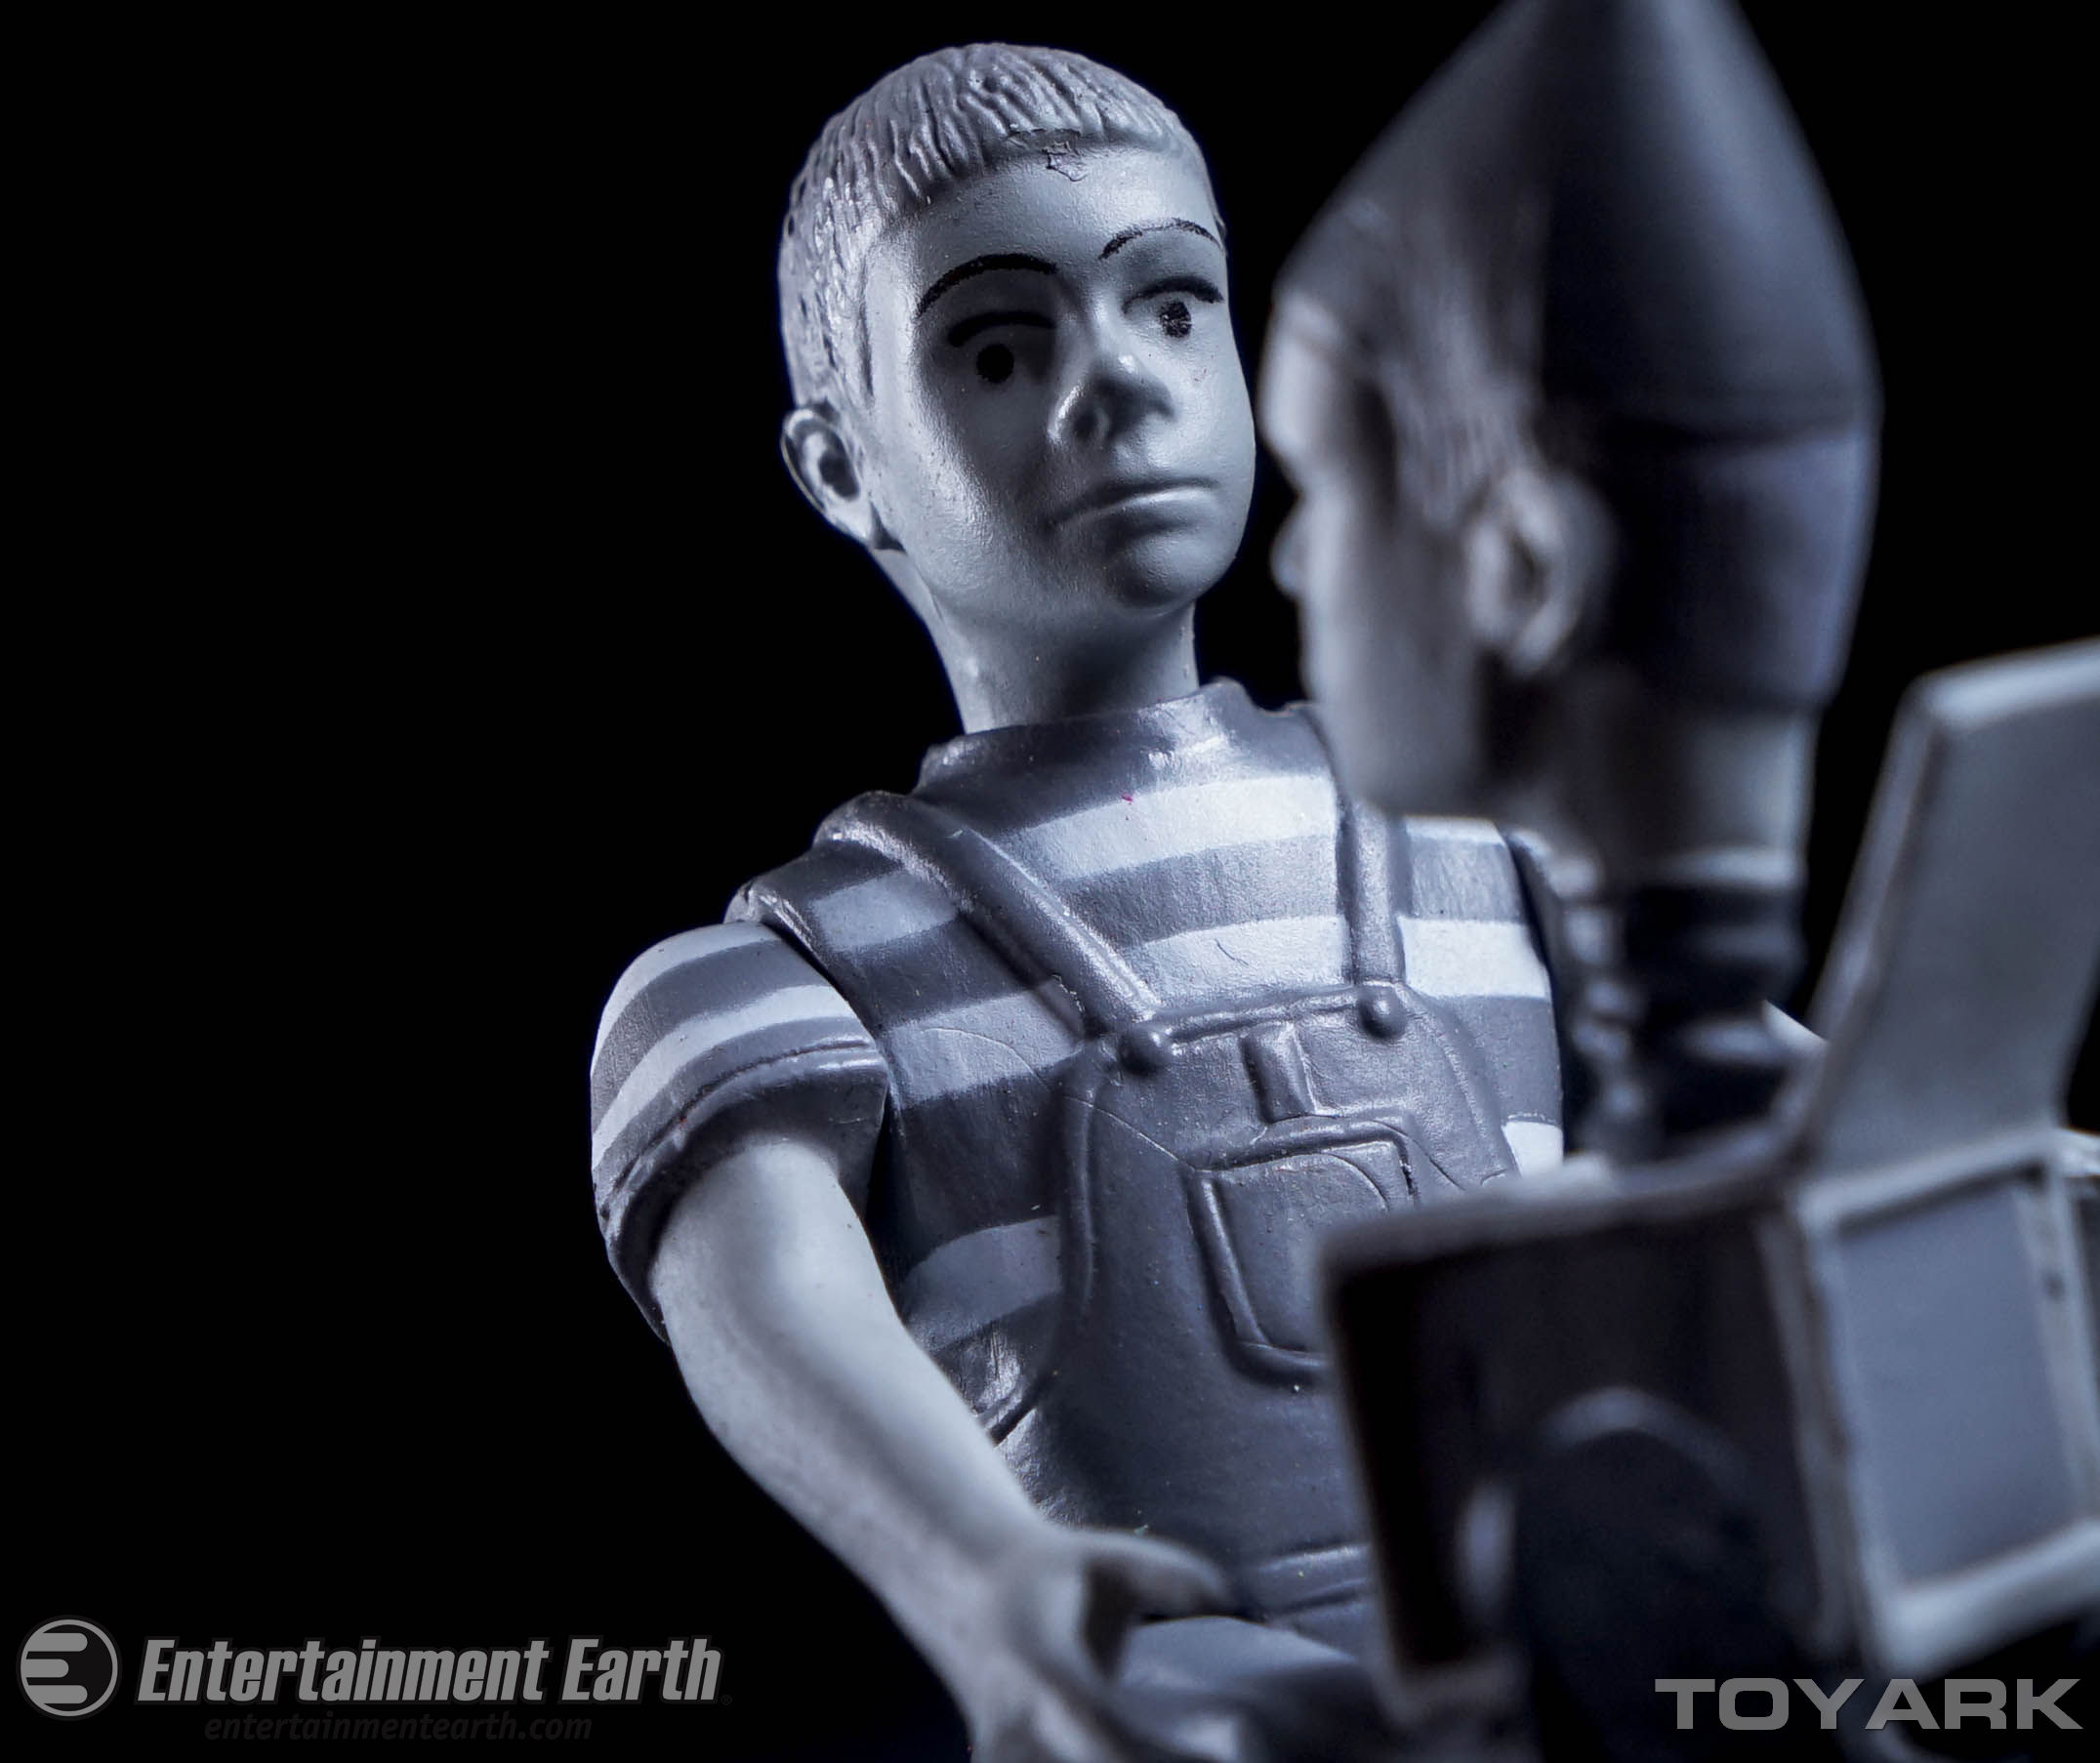 http://news.toyark.com/wp-content/uploads/sites/4/2015/10/Twilight-Zone-Series-2-Figures-063.jpg